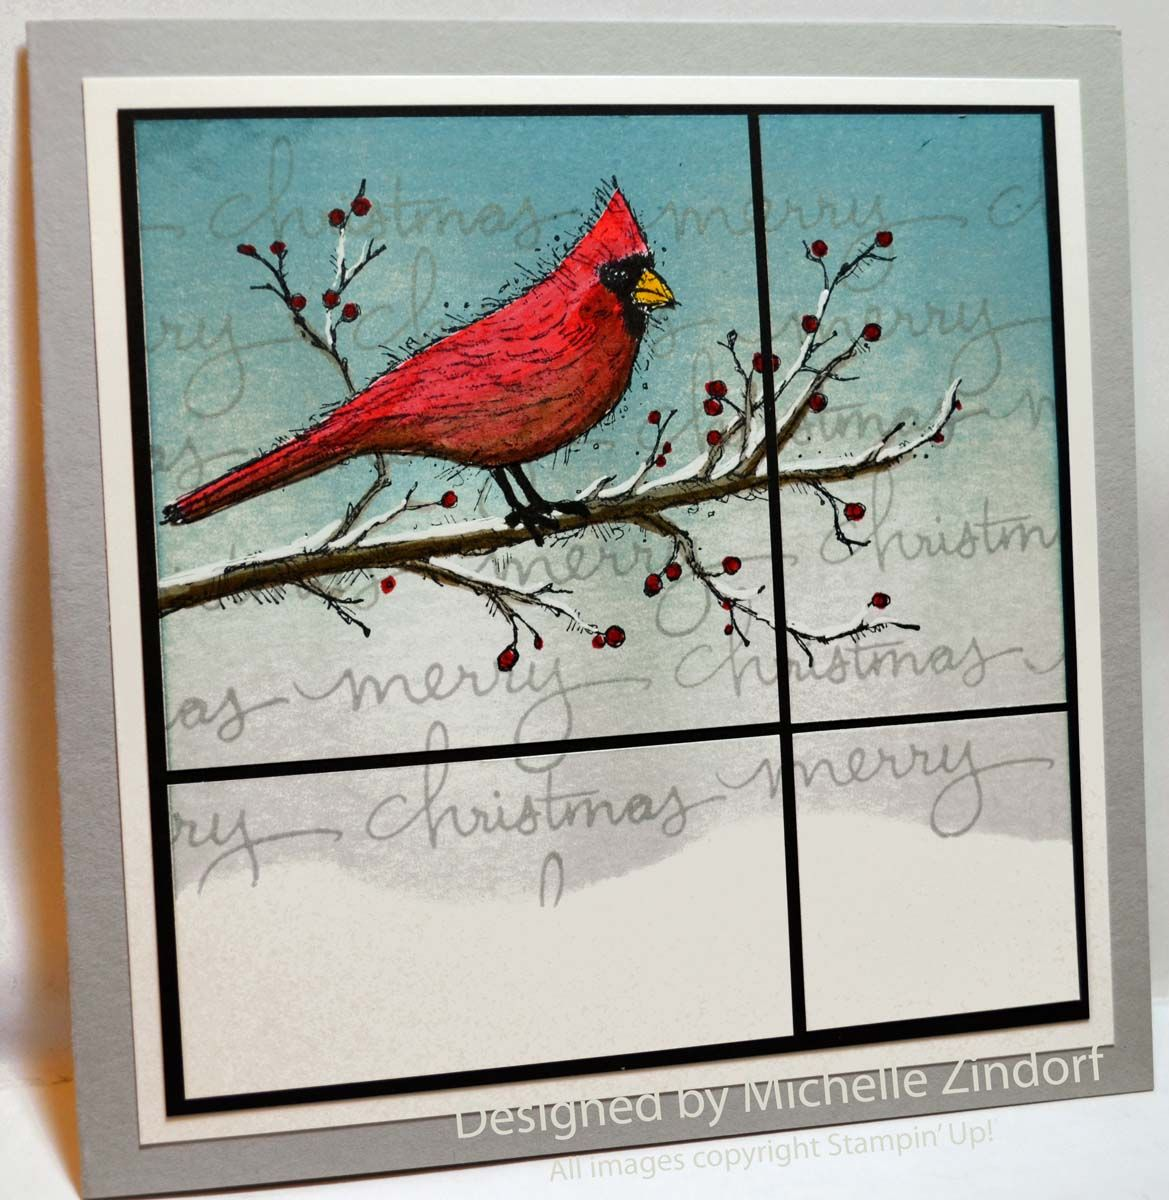 Cardinal In The Window Stampin' Up! Card Created By